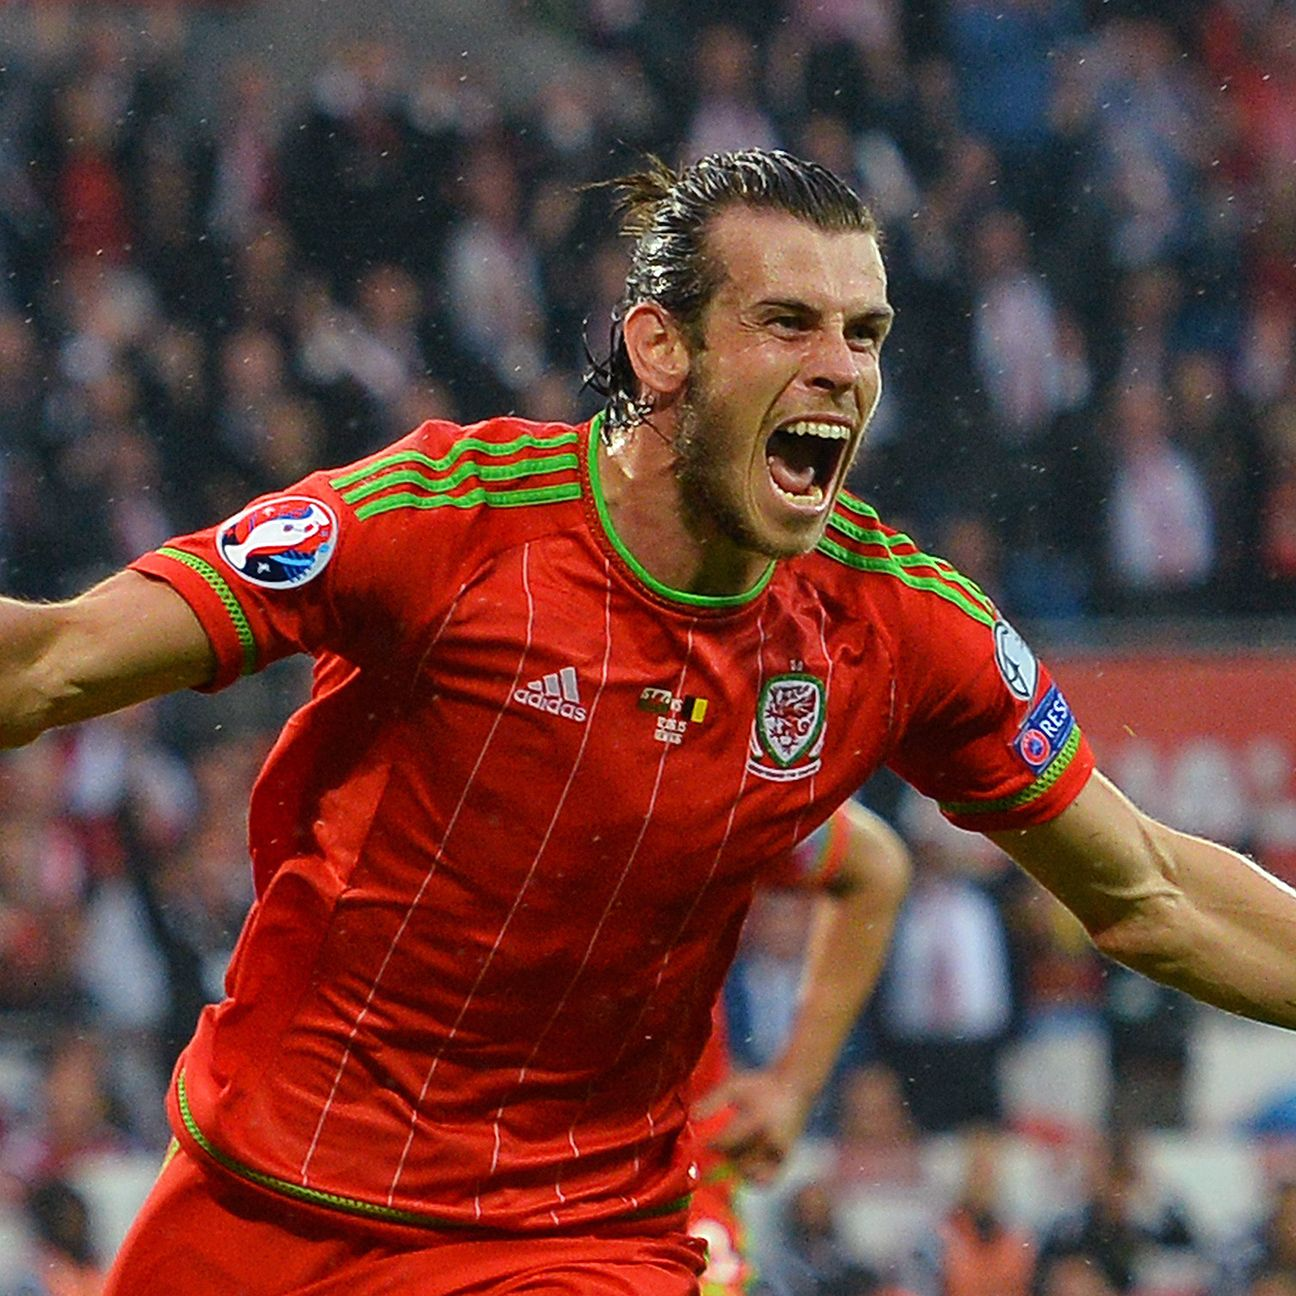 Welsh superstar Gareth Bale will get a crack at neighbours England in Group B.